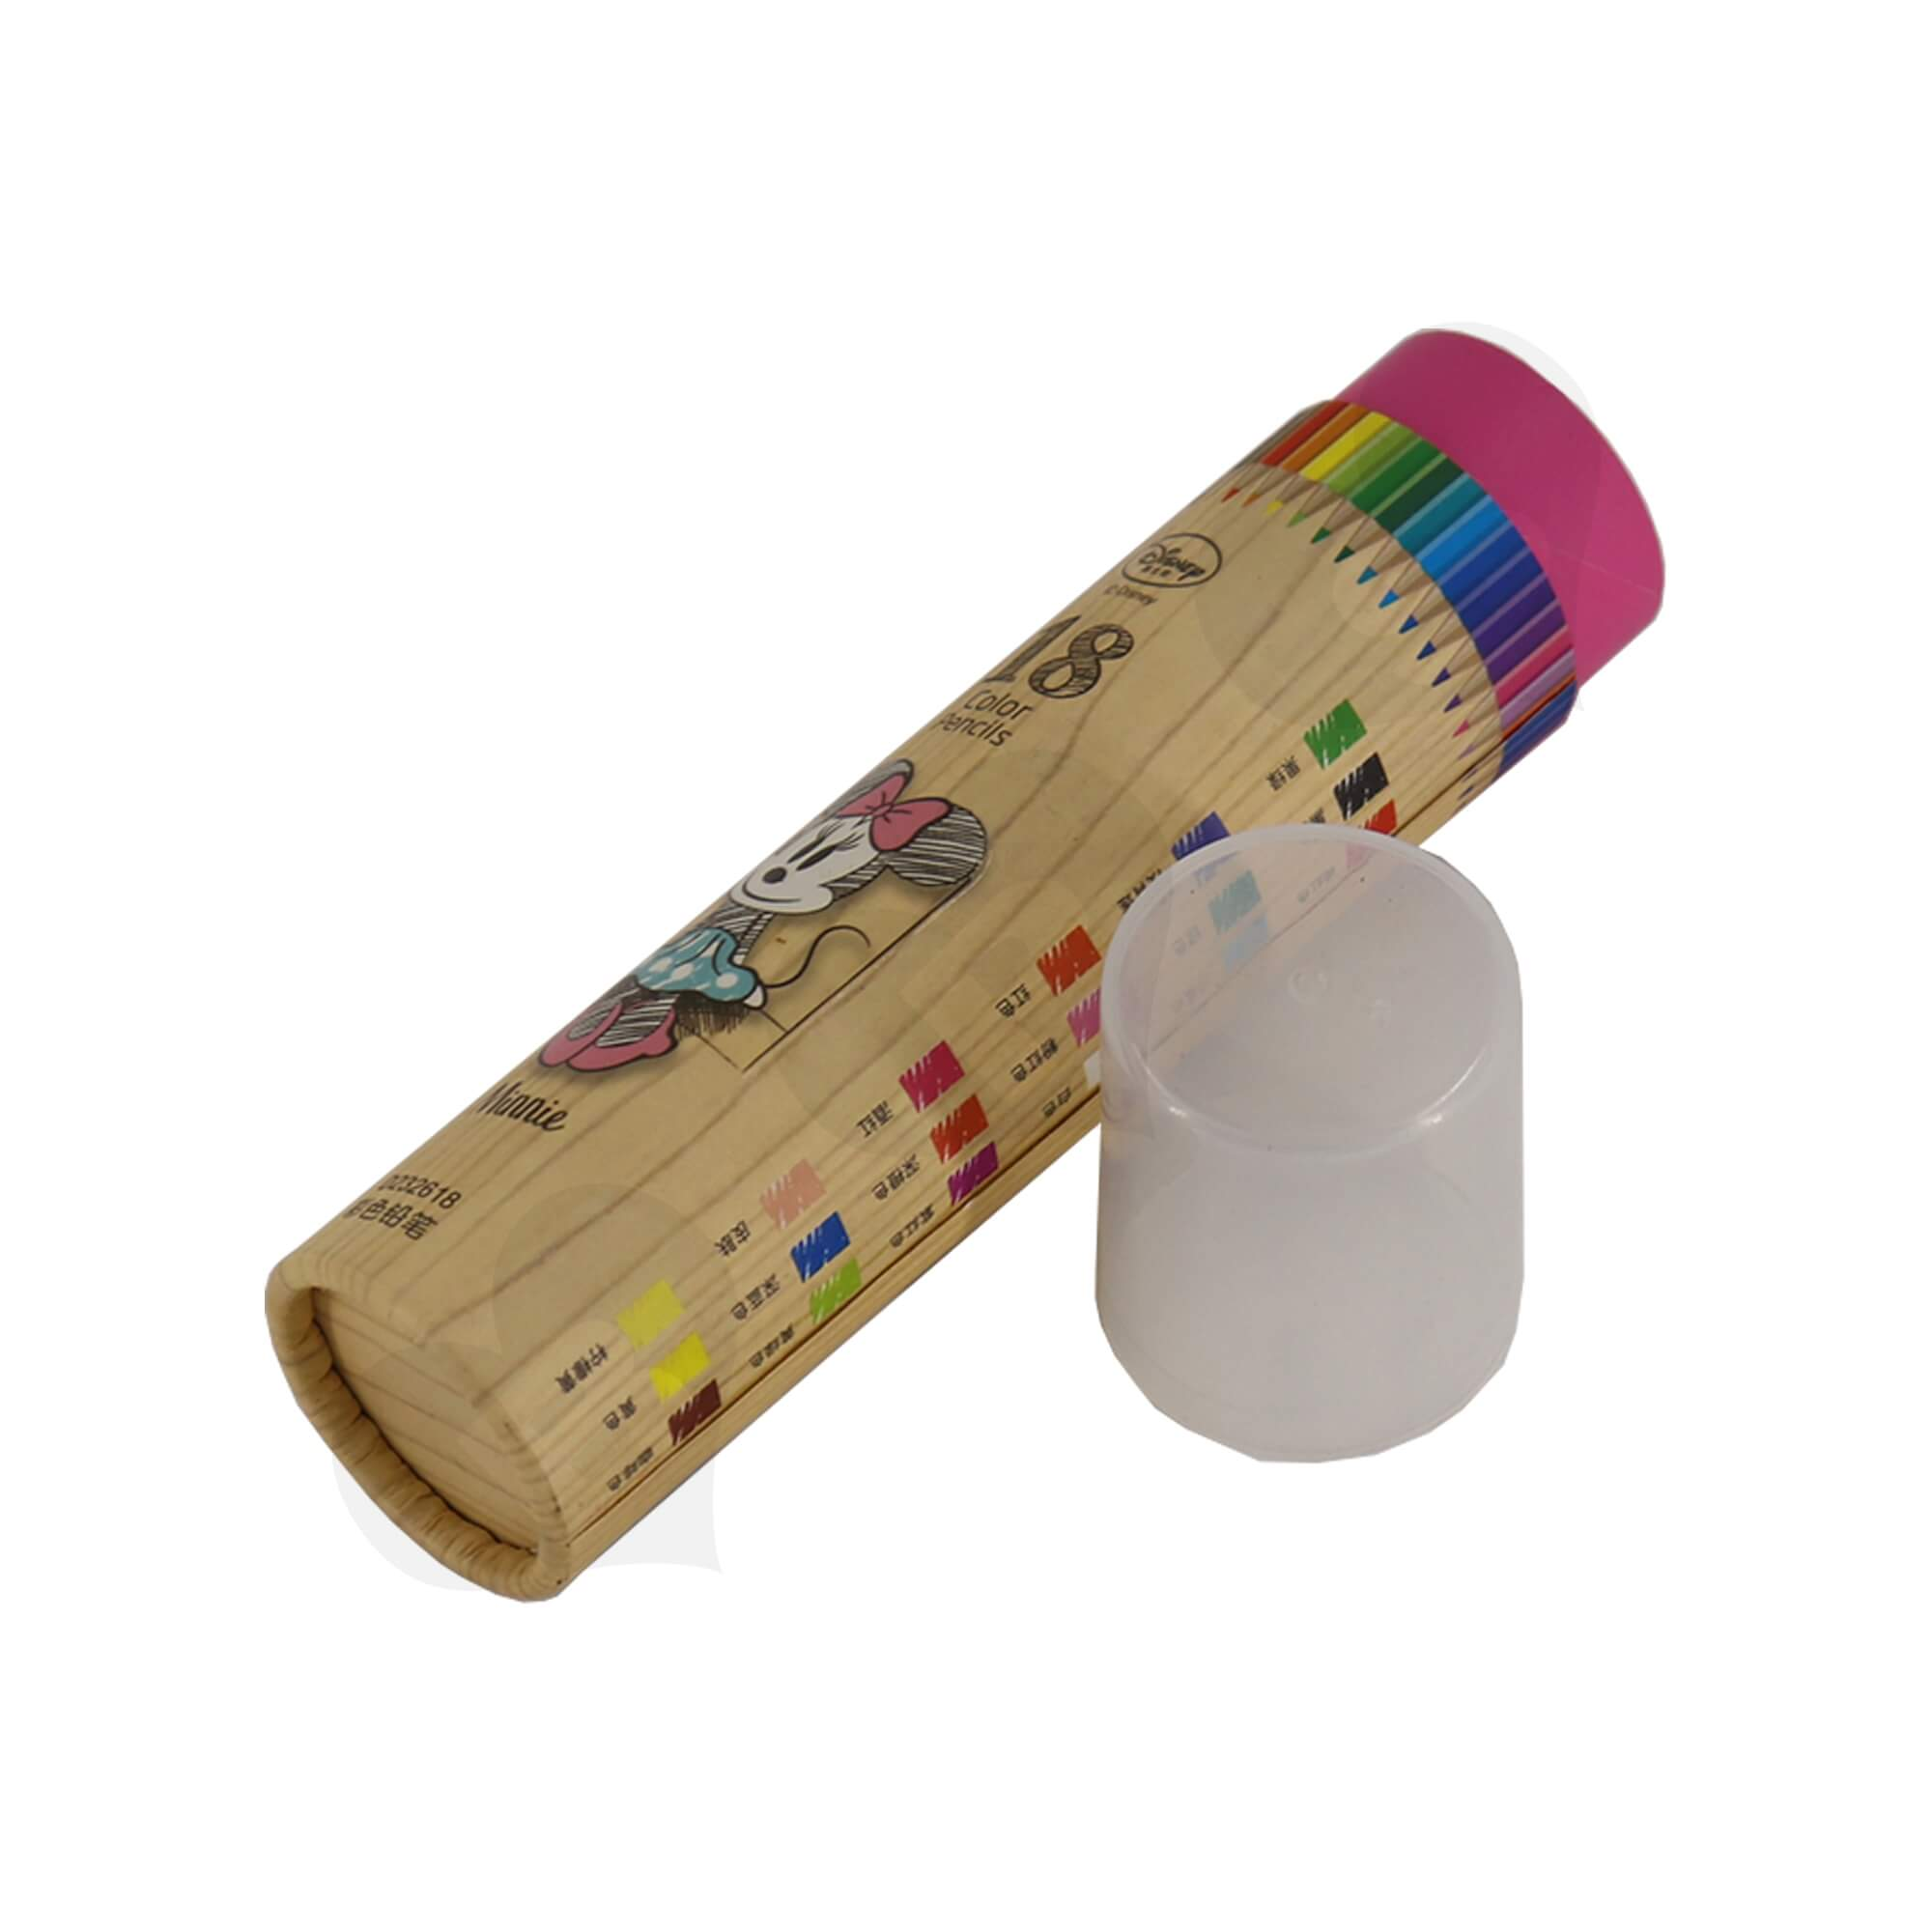 Branded Cardboard Cylinder With Plastic Lid For Packing Color Pencils Side View Four